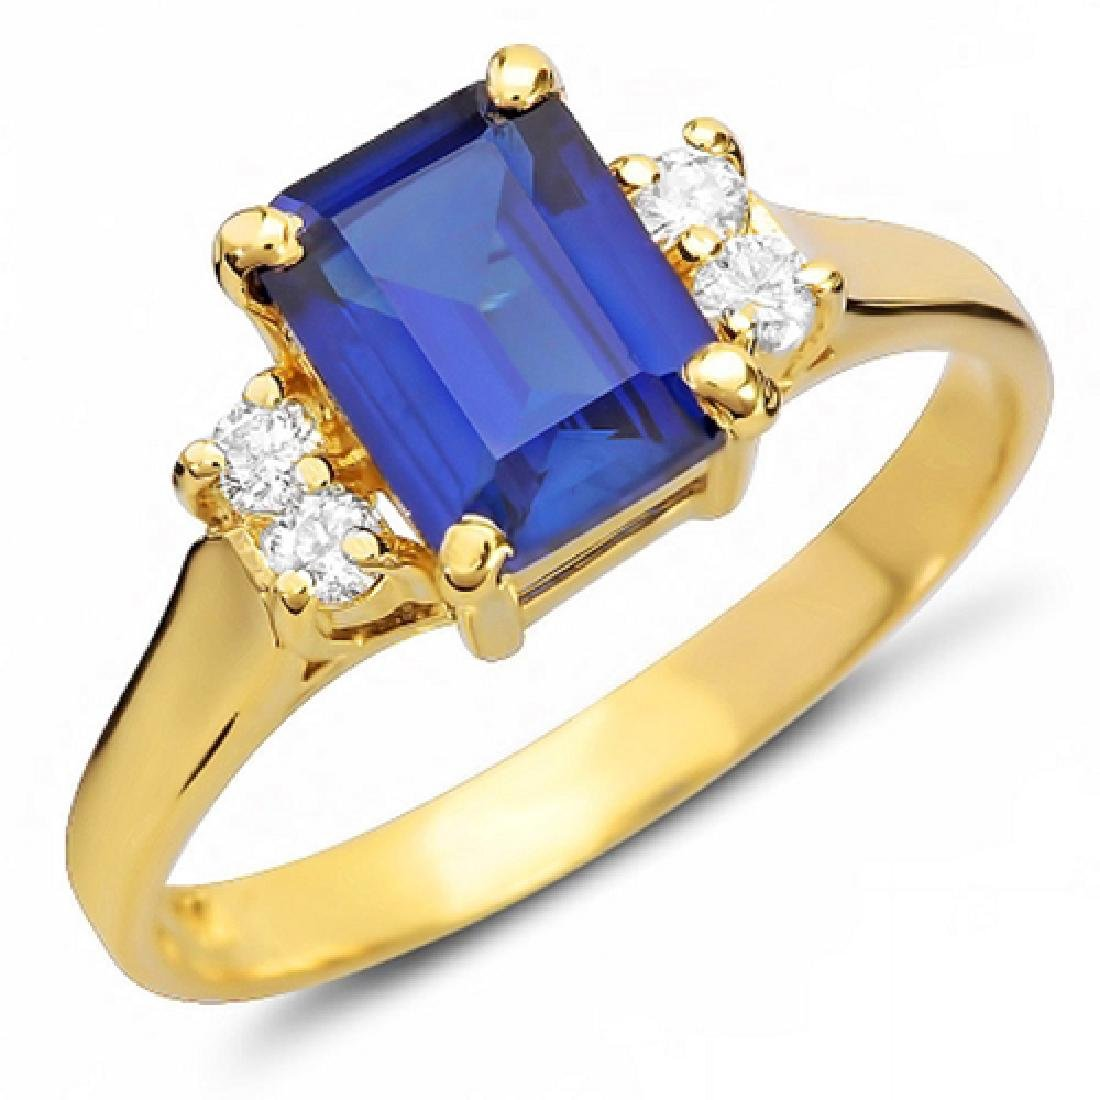 1.65 Carat Natural Sapphire 18K Solid Yellow Gold